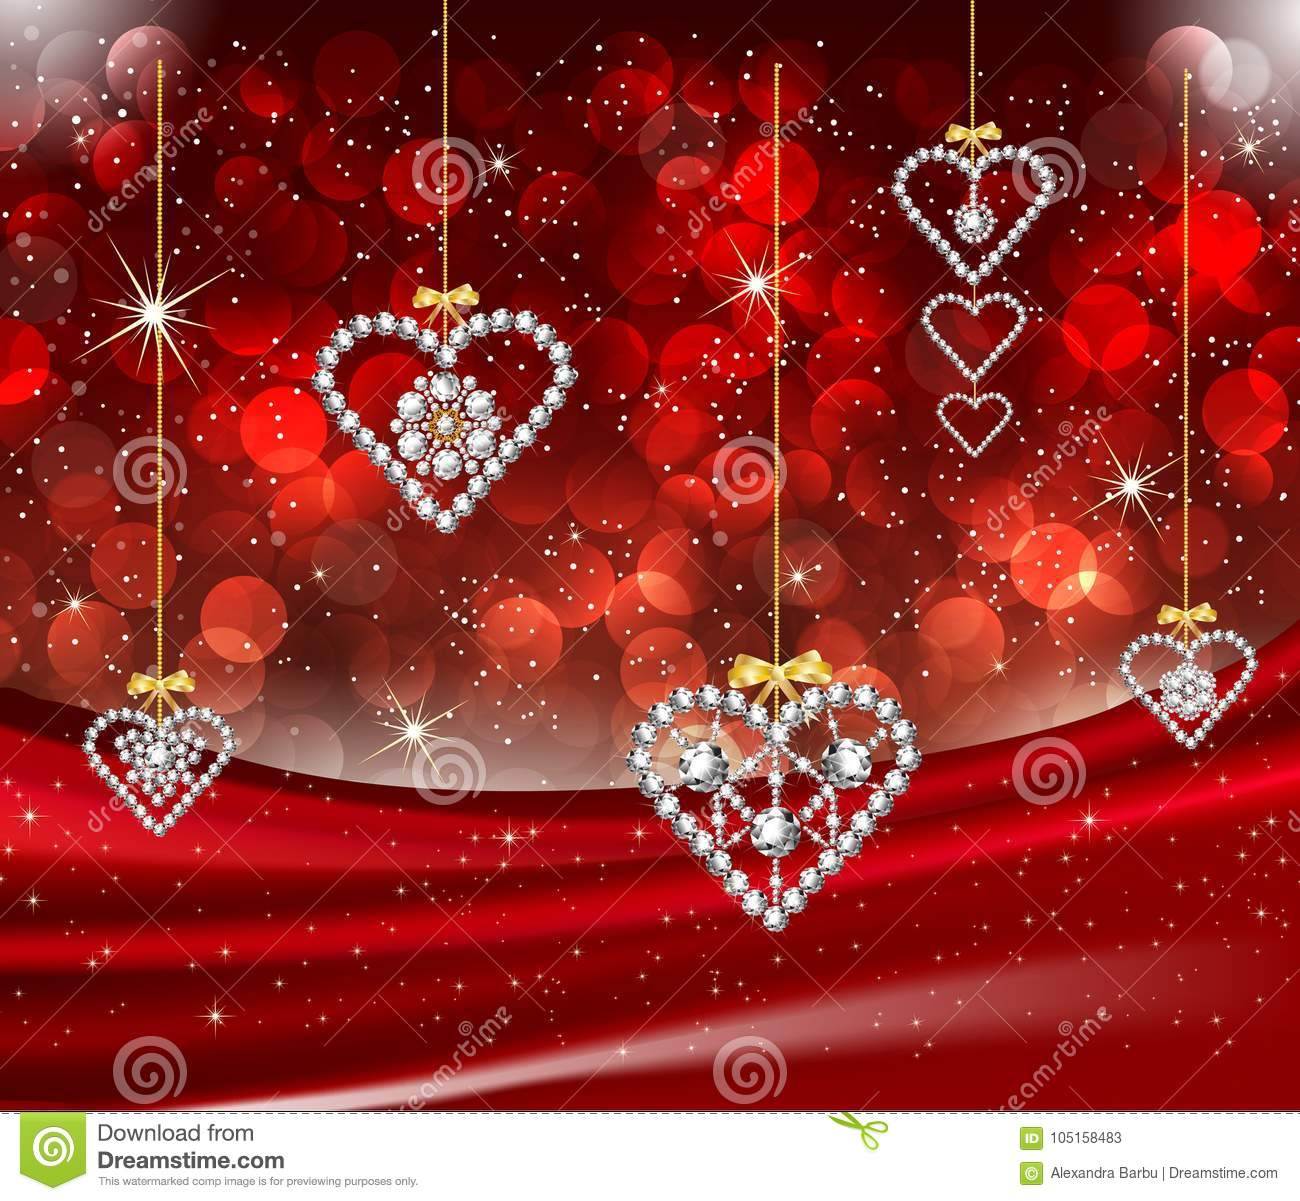 Romantic Valentine Diamond Hearts Red Background Stock Vector